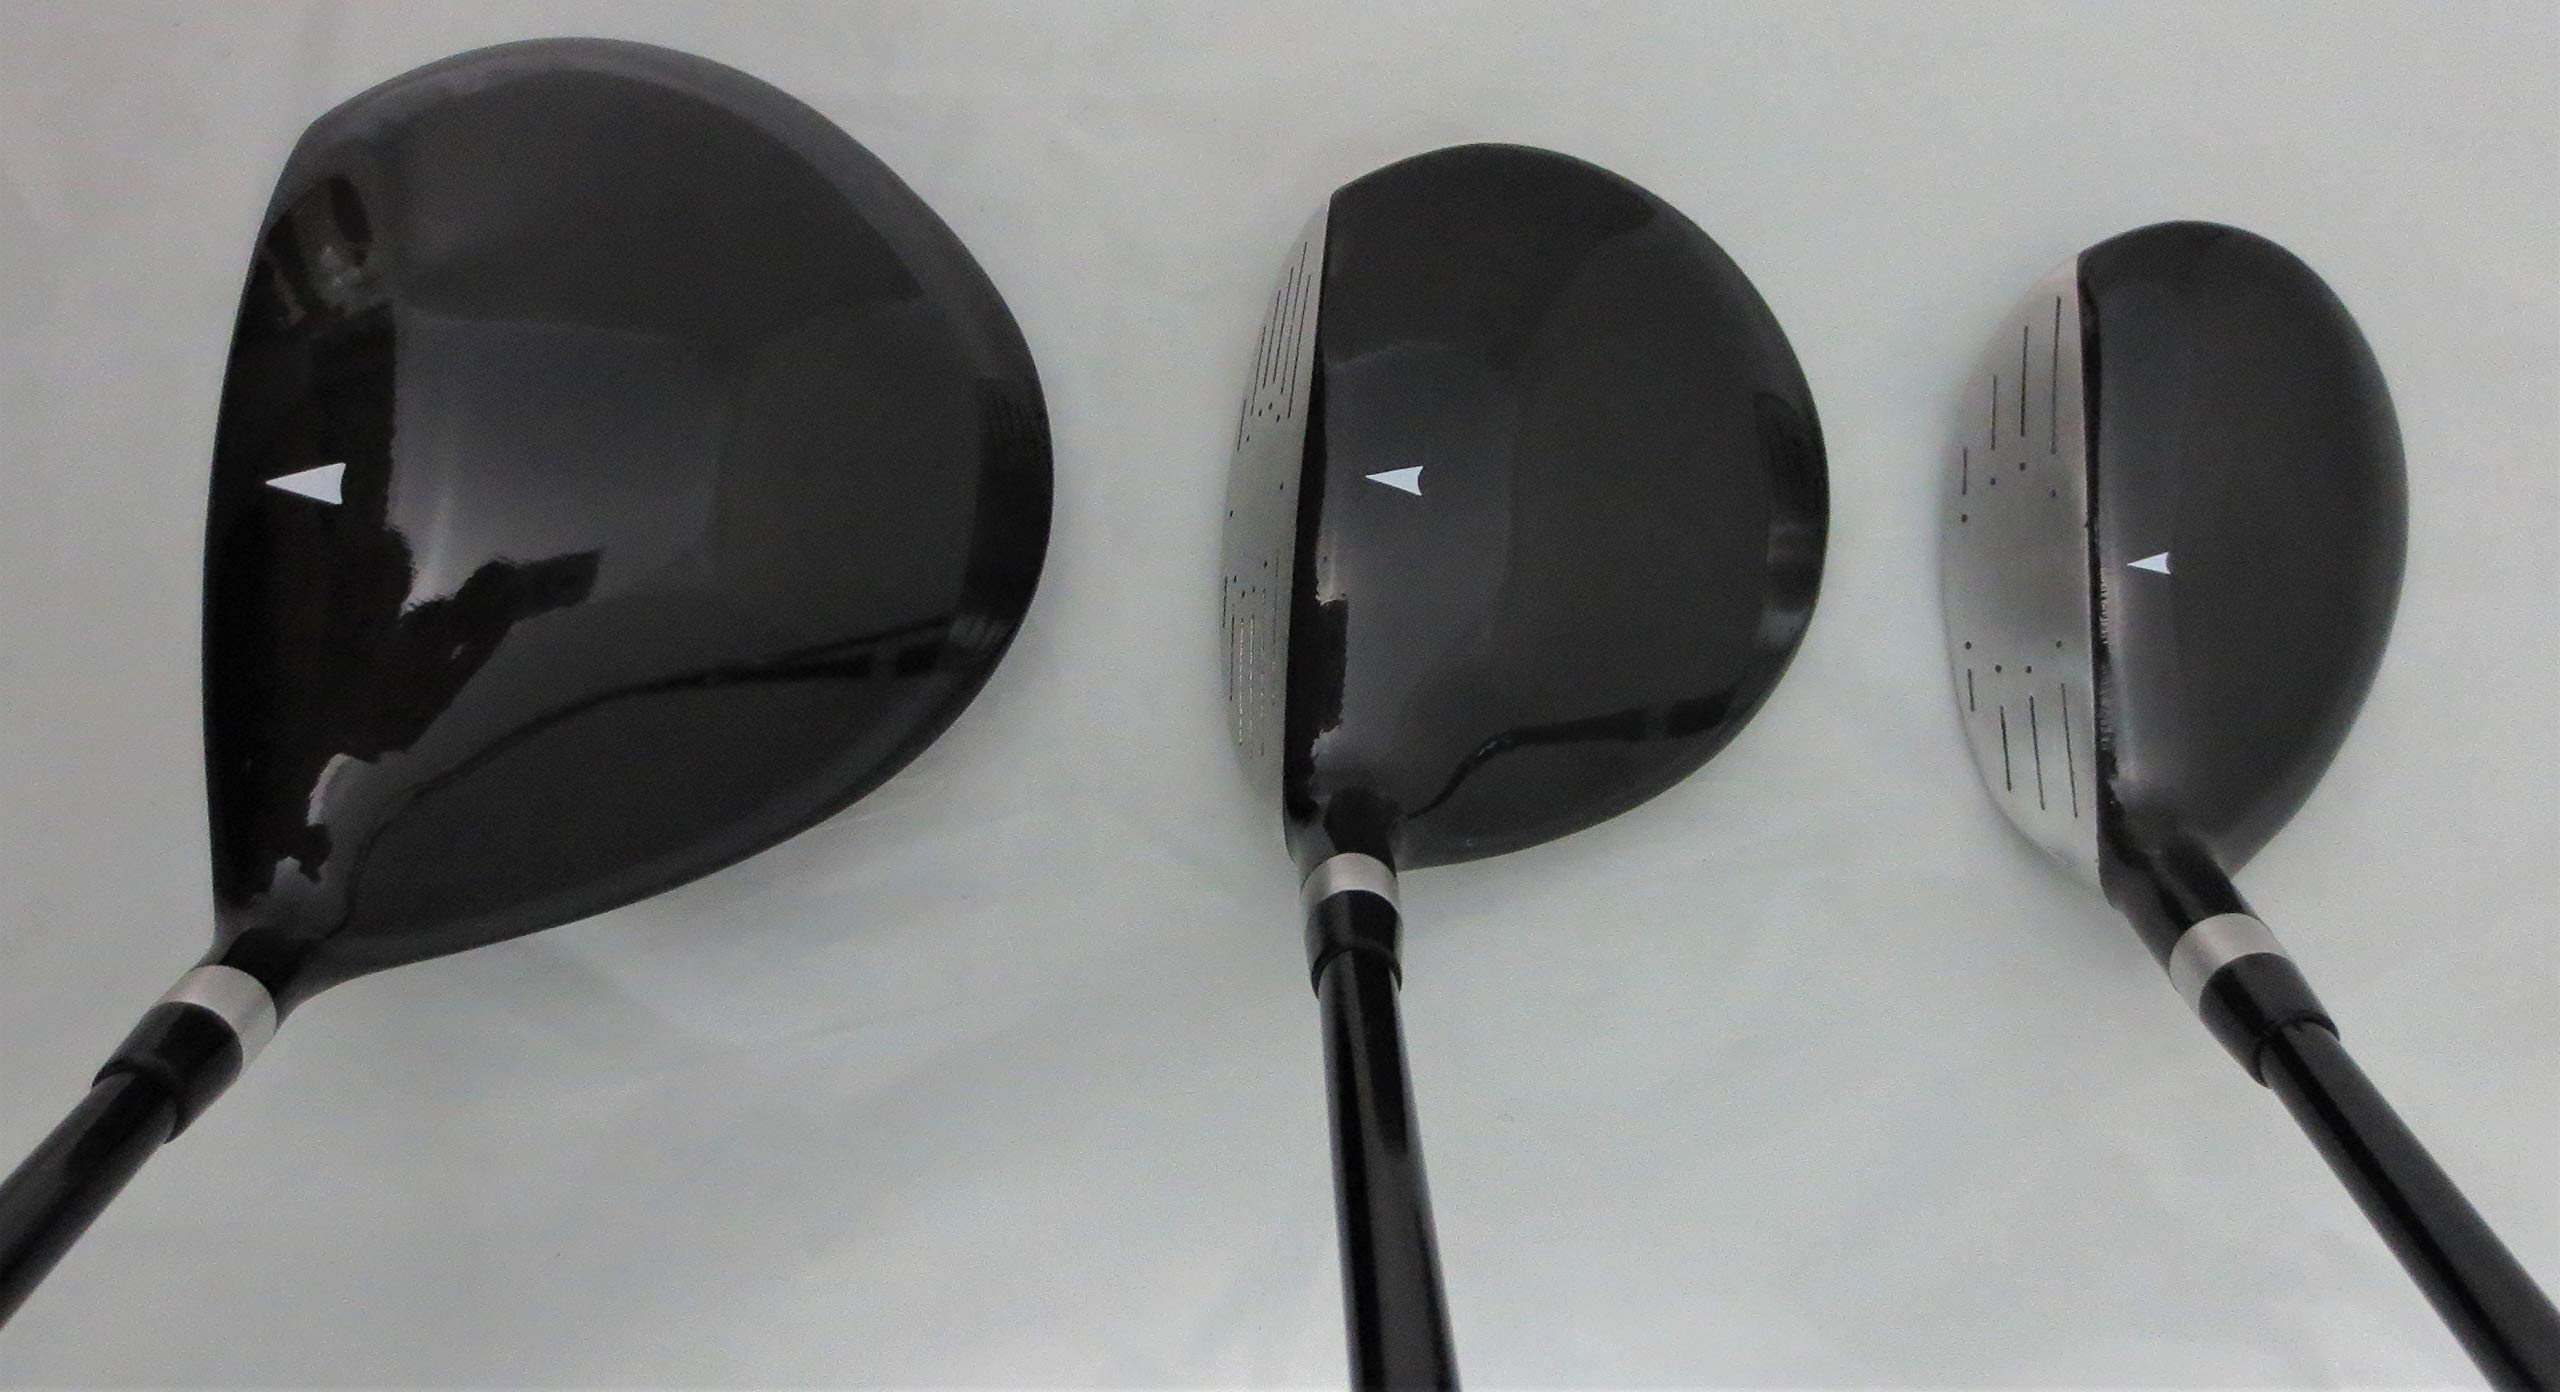 Tartan Sports New Teen Golf Club Set Complete with Stand Bag for Teenagers Ages 13-16 Driver, Wood Hybrid, Irons Putter by Tartan Sports (Image #4)